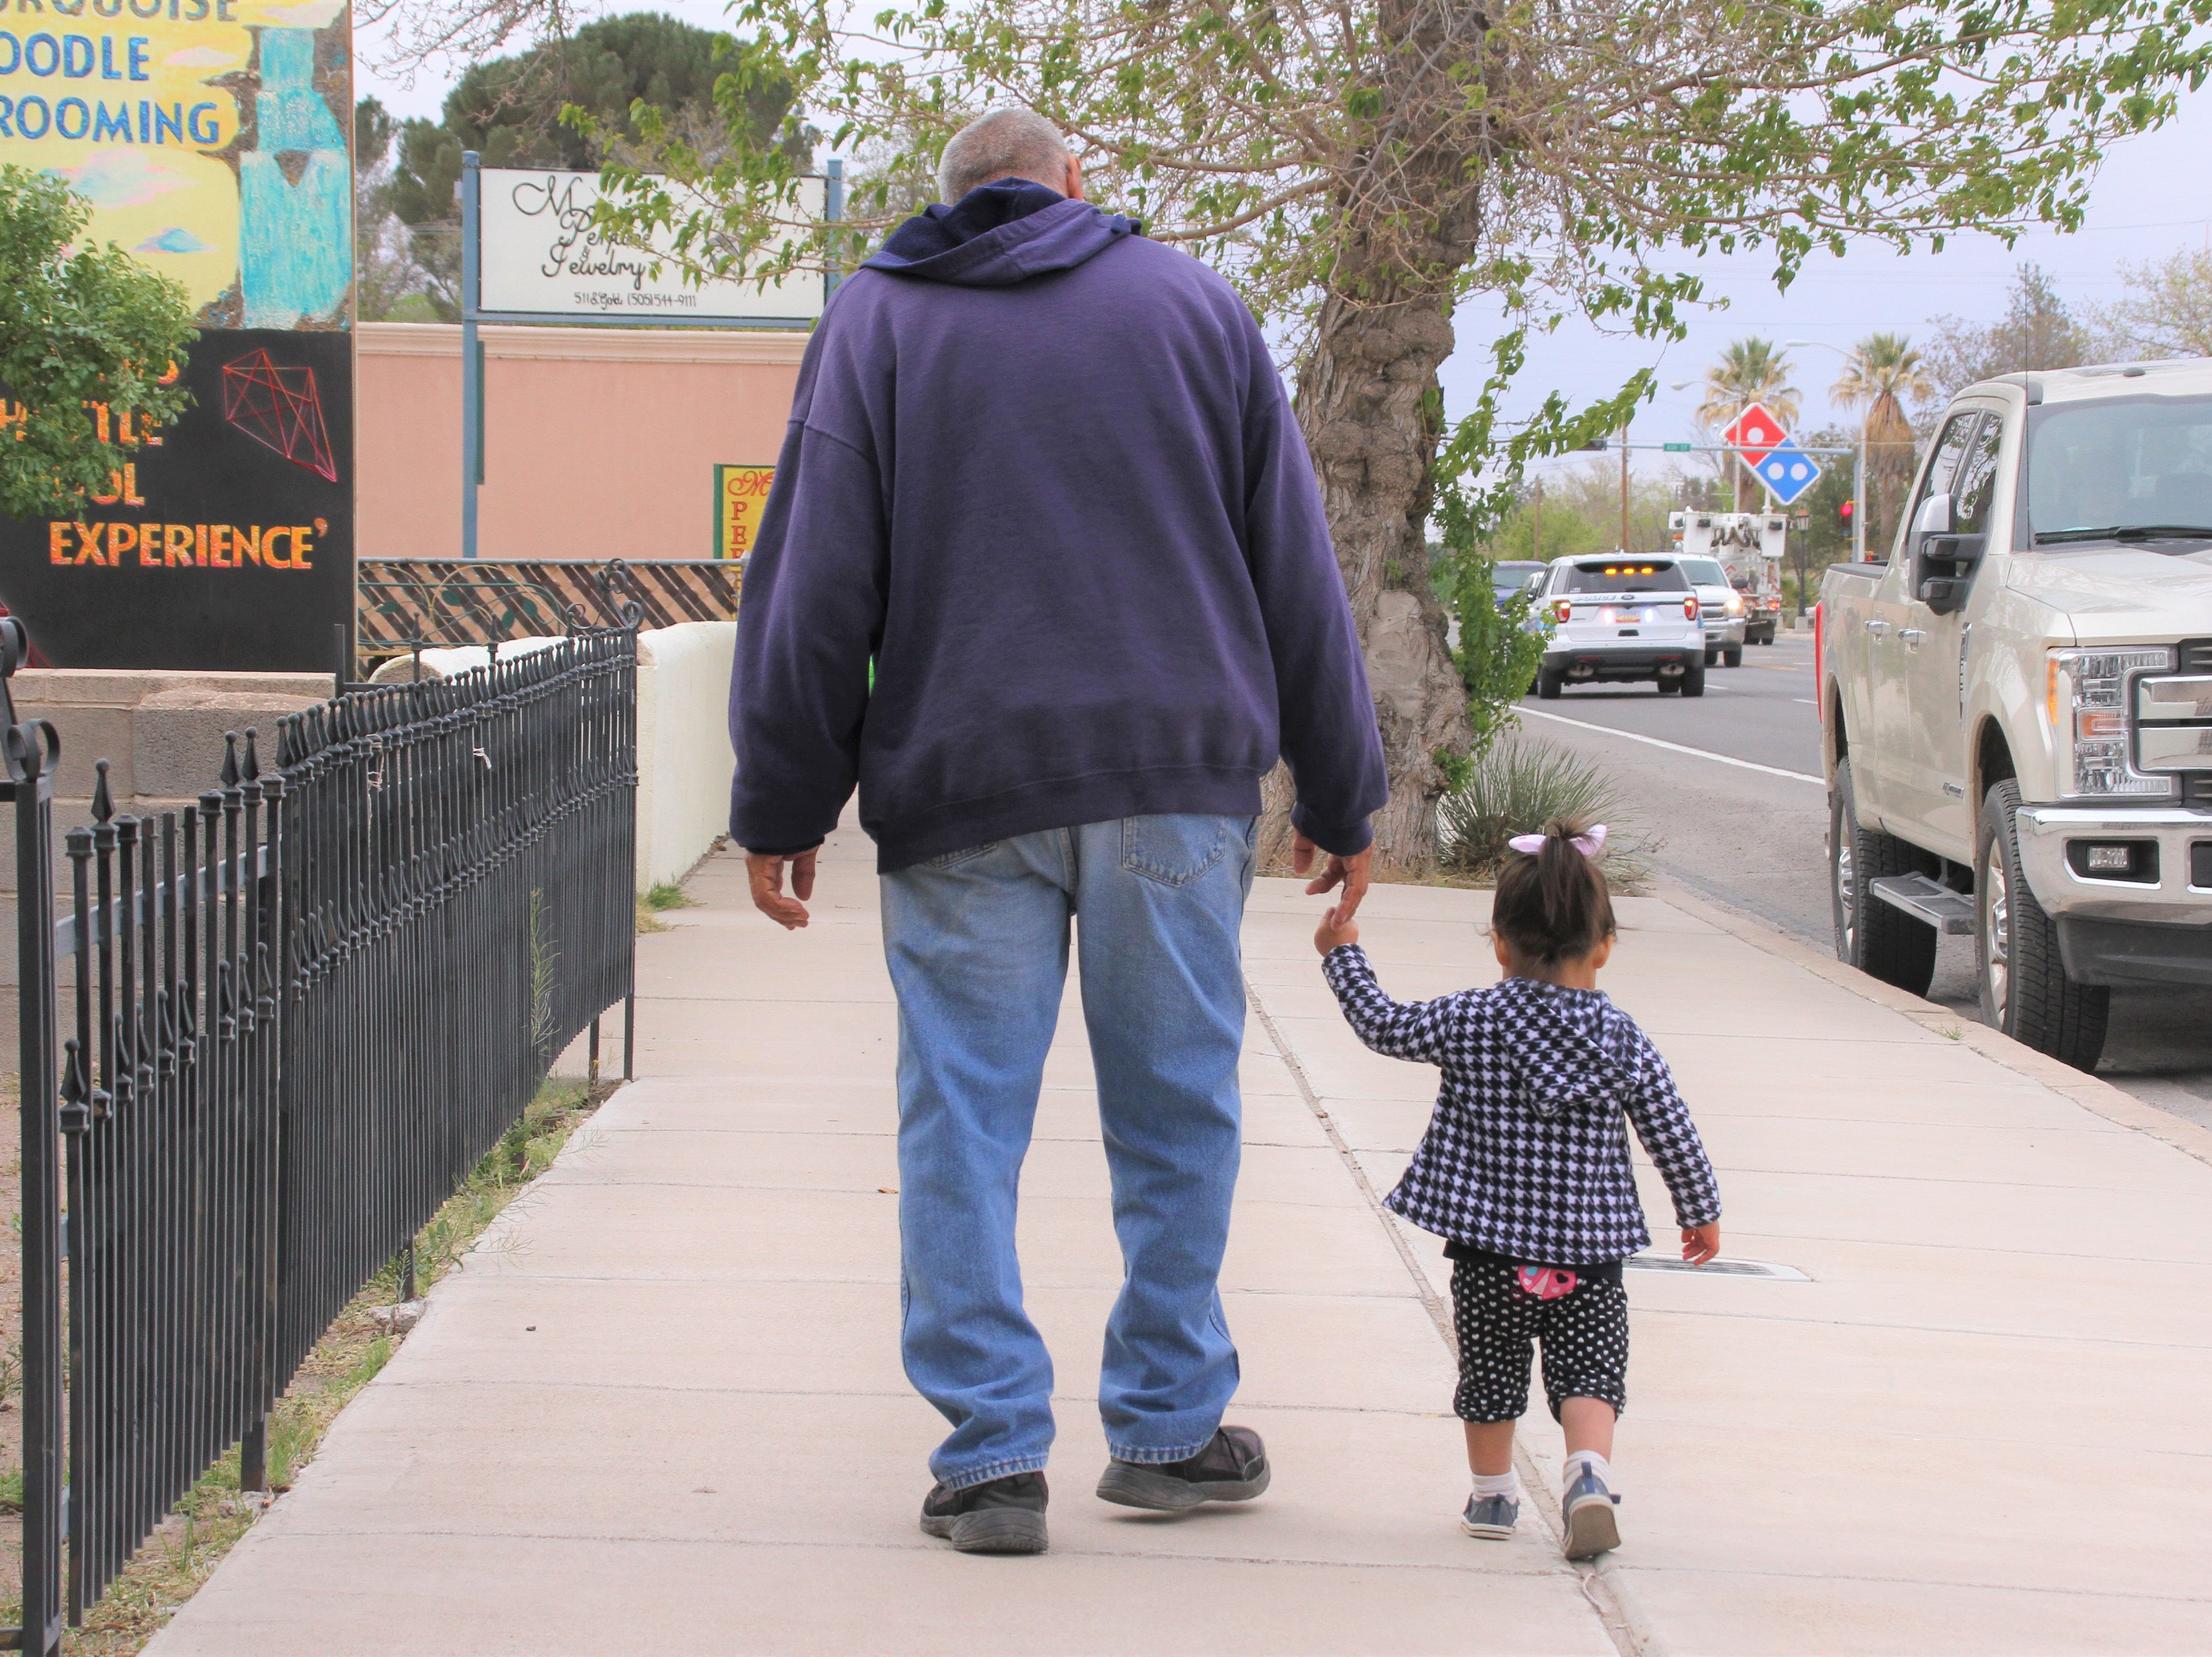 Left, Grandpa Ricky walking along with granddaughter Allie Baca.